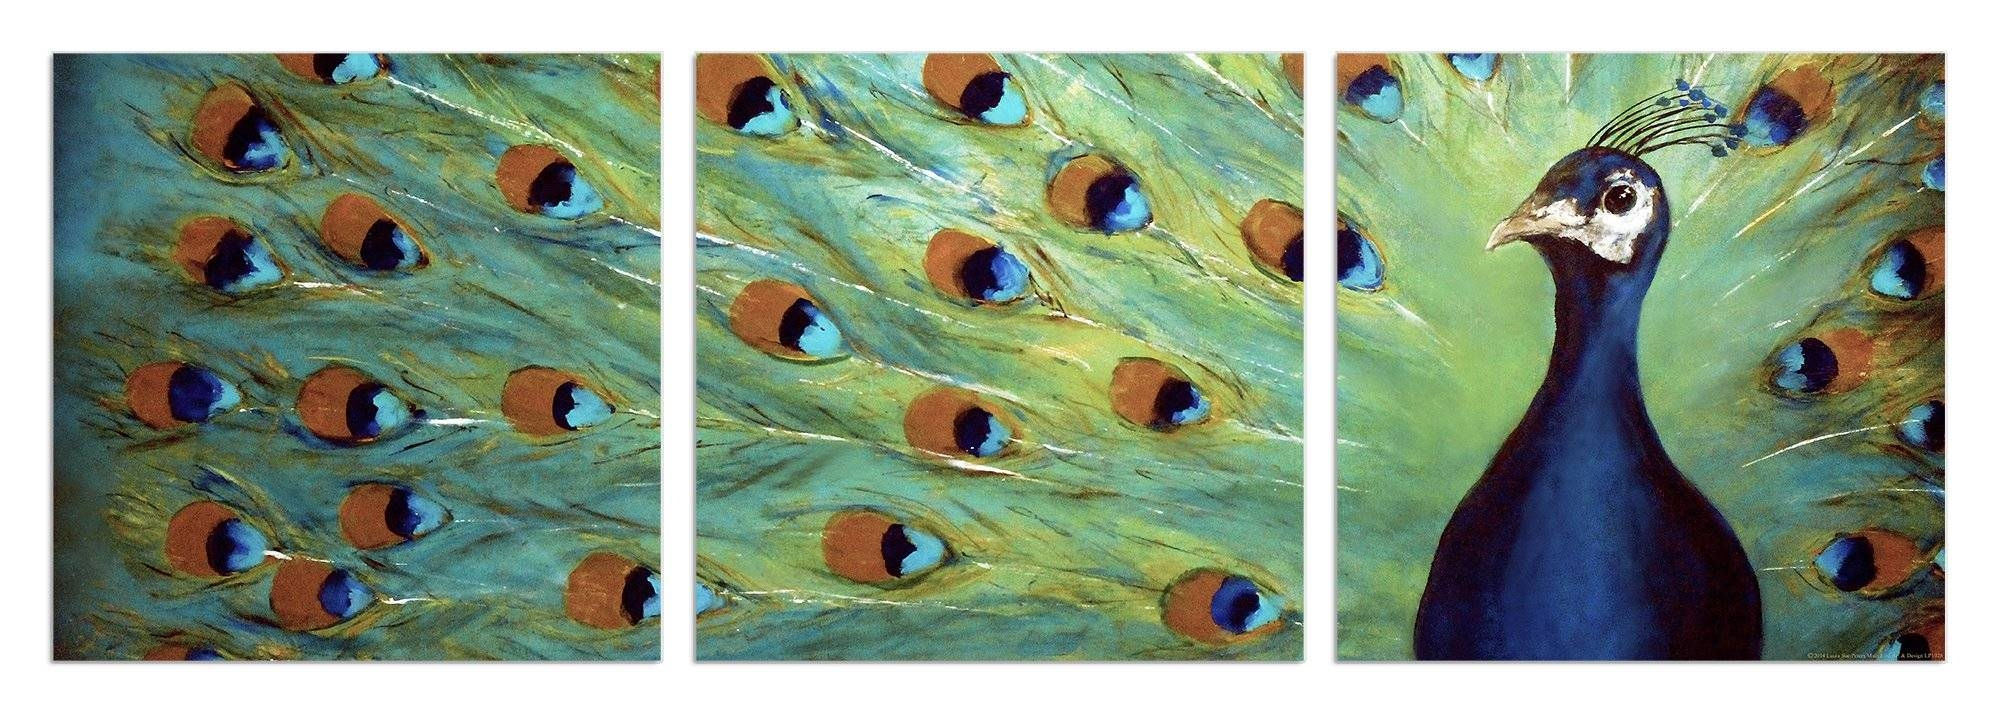 Stupell Industries Prized Peacock 3 Piece Triptych Canvas Wall Art In Most Current Canvas Wall Art 3 Piece Sets (View 12 of 20)